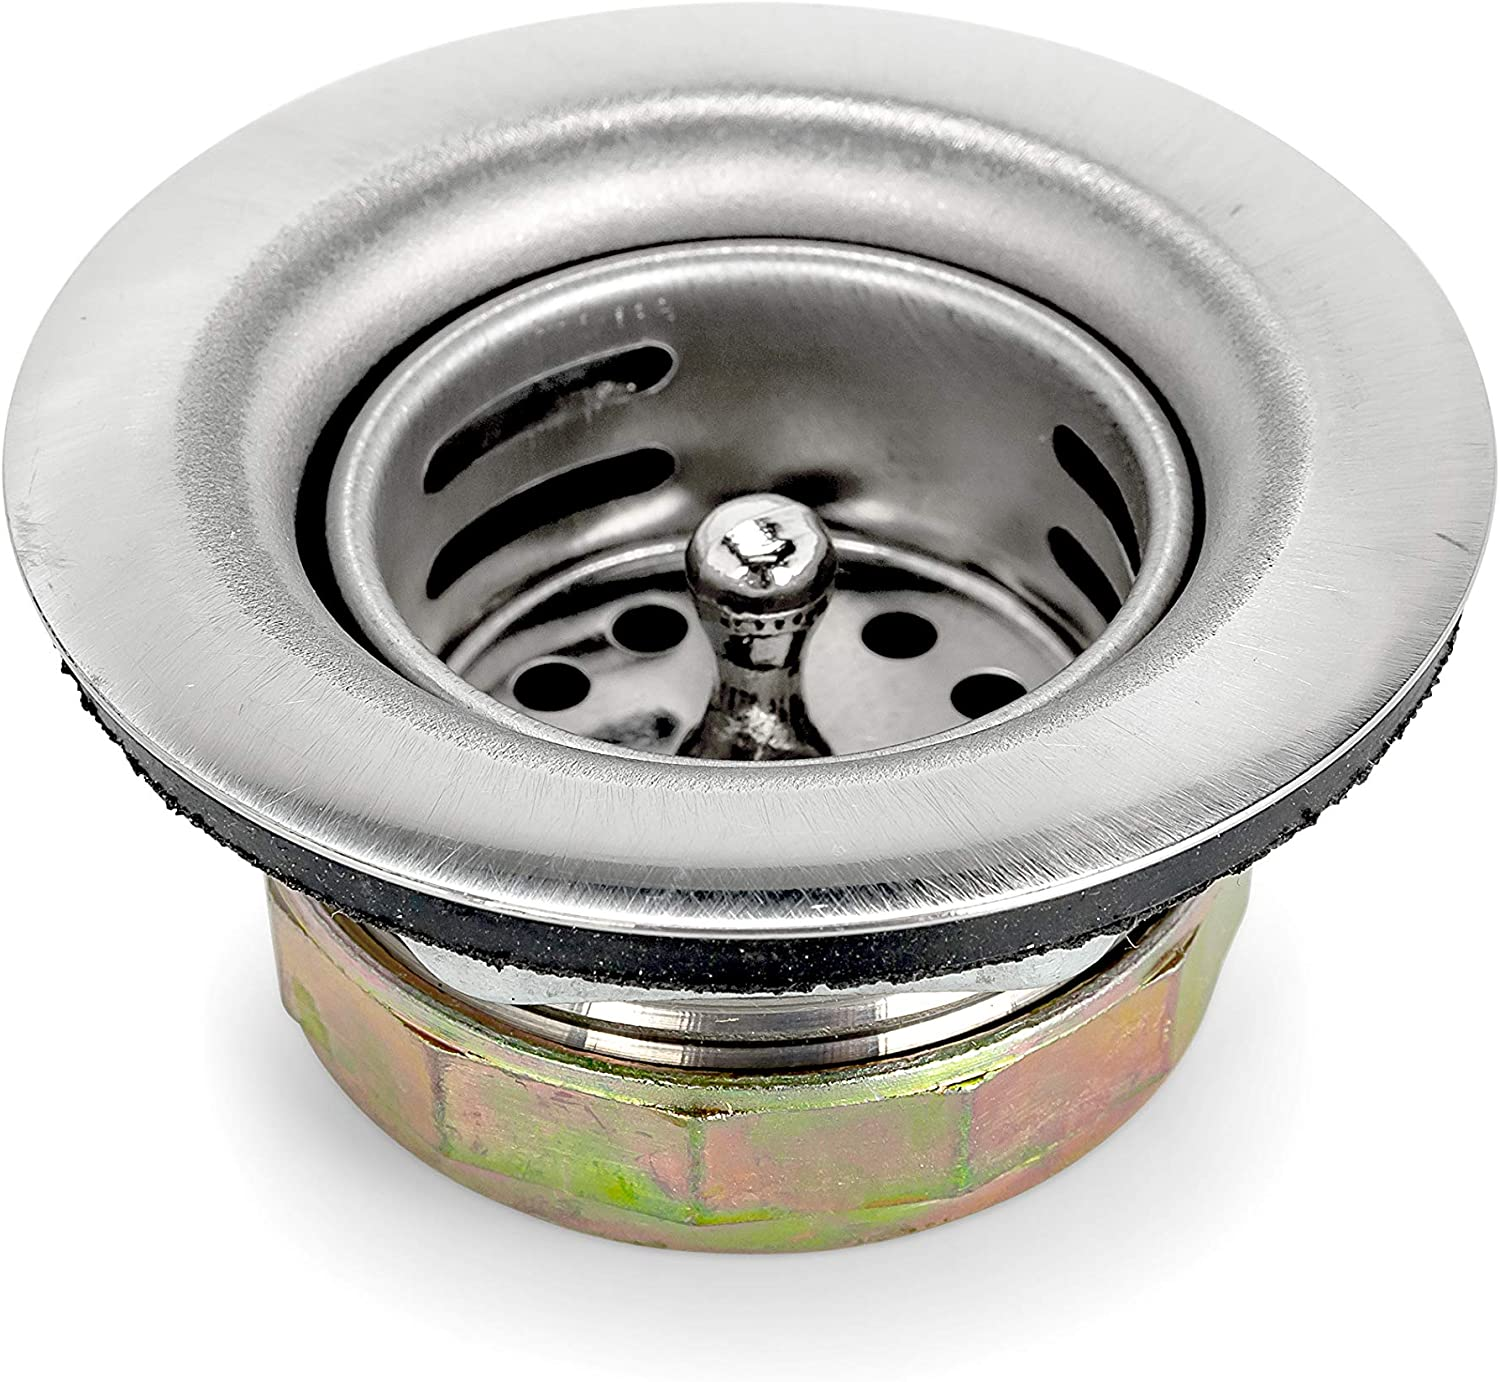 """Camco Replacement RV Kitchen Sink Drain and Strainer Basket - Prevents Clogs in Your RV's Kitchen or bar Sink - Compatible with 2-1/2"""" Drain Openings (42277)"""